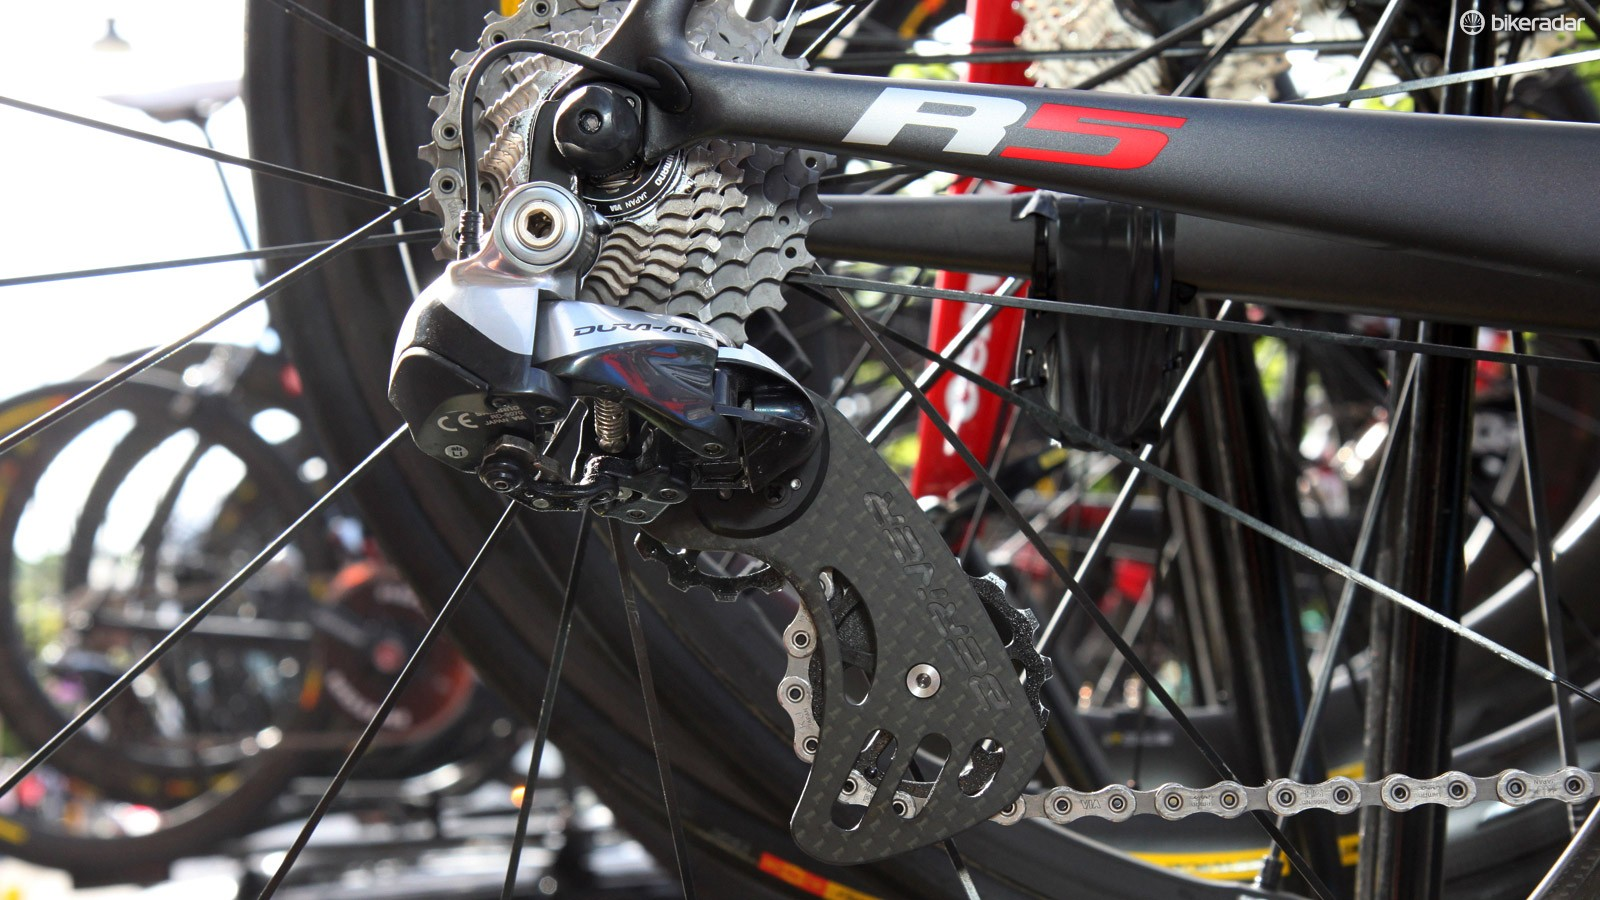 Ryder Hesjedal (Garmin-Sharp) is yet another rider who has joined the Berner oversized pulley camp. While the frictional advantage over stock pulleys is relatively small, it's still real